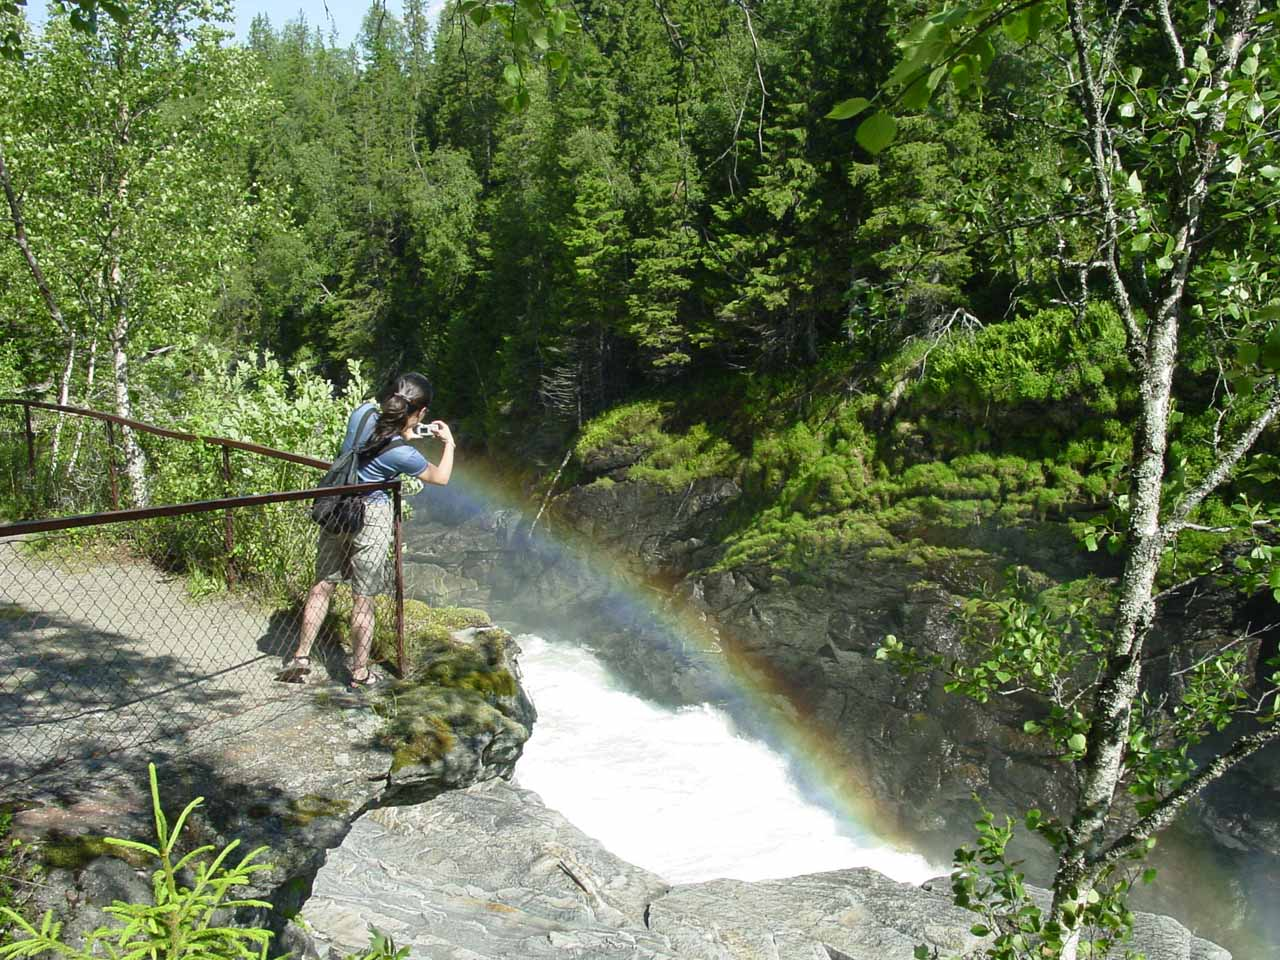 Julie tries to get a better view of Formofossen and the bold rainbows